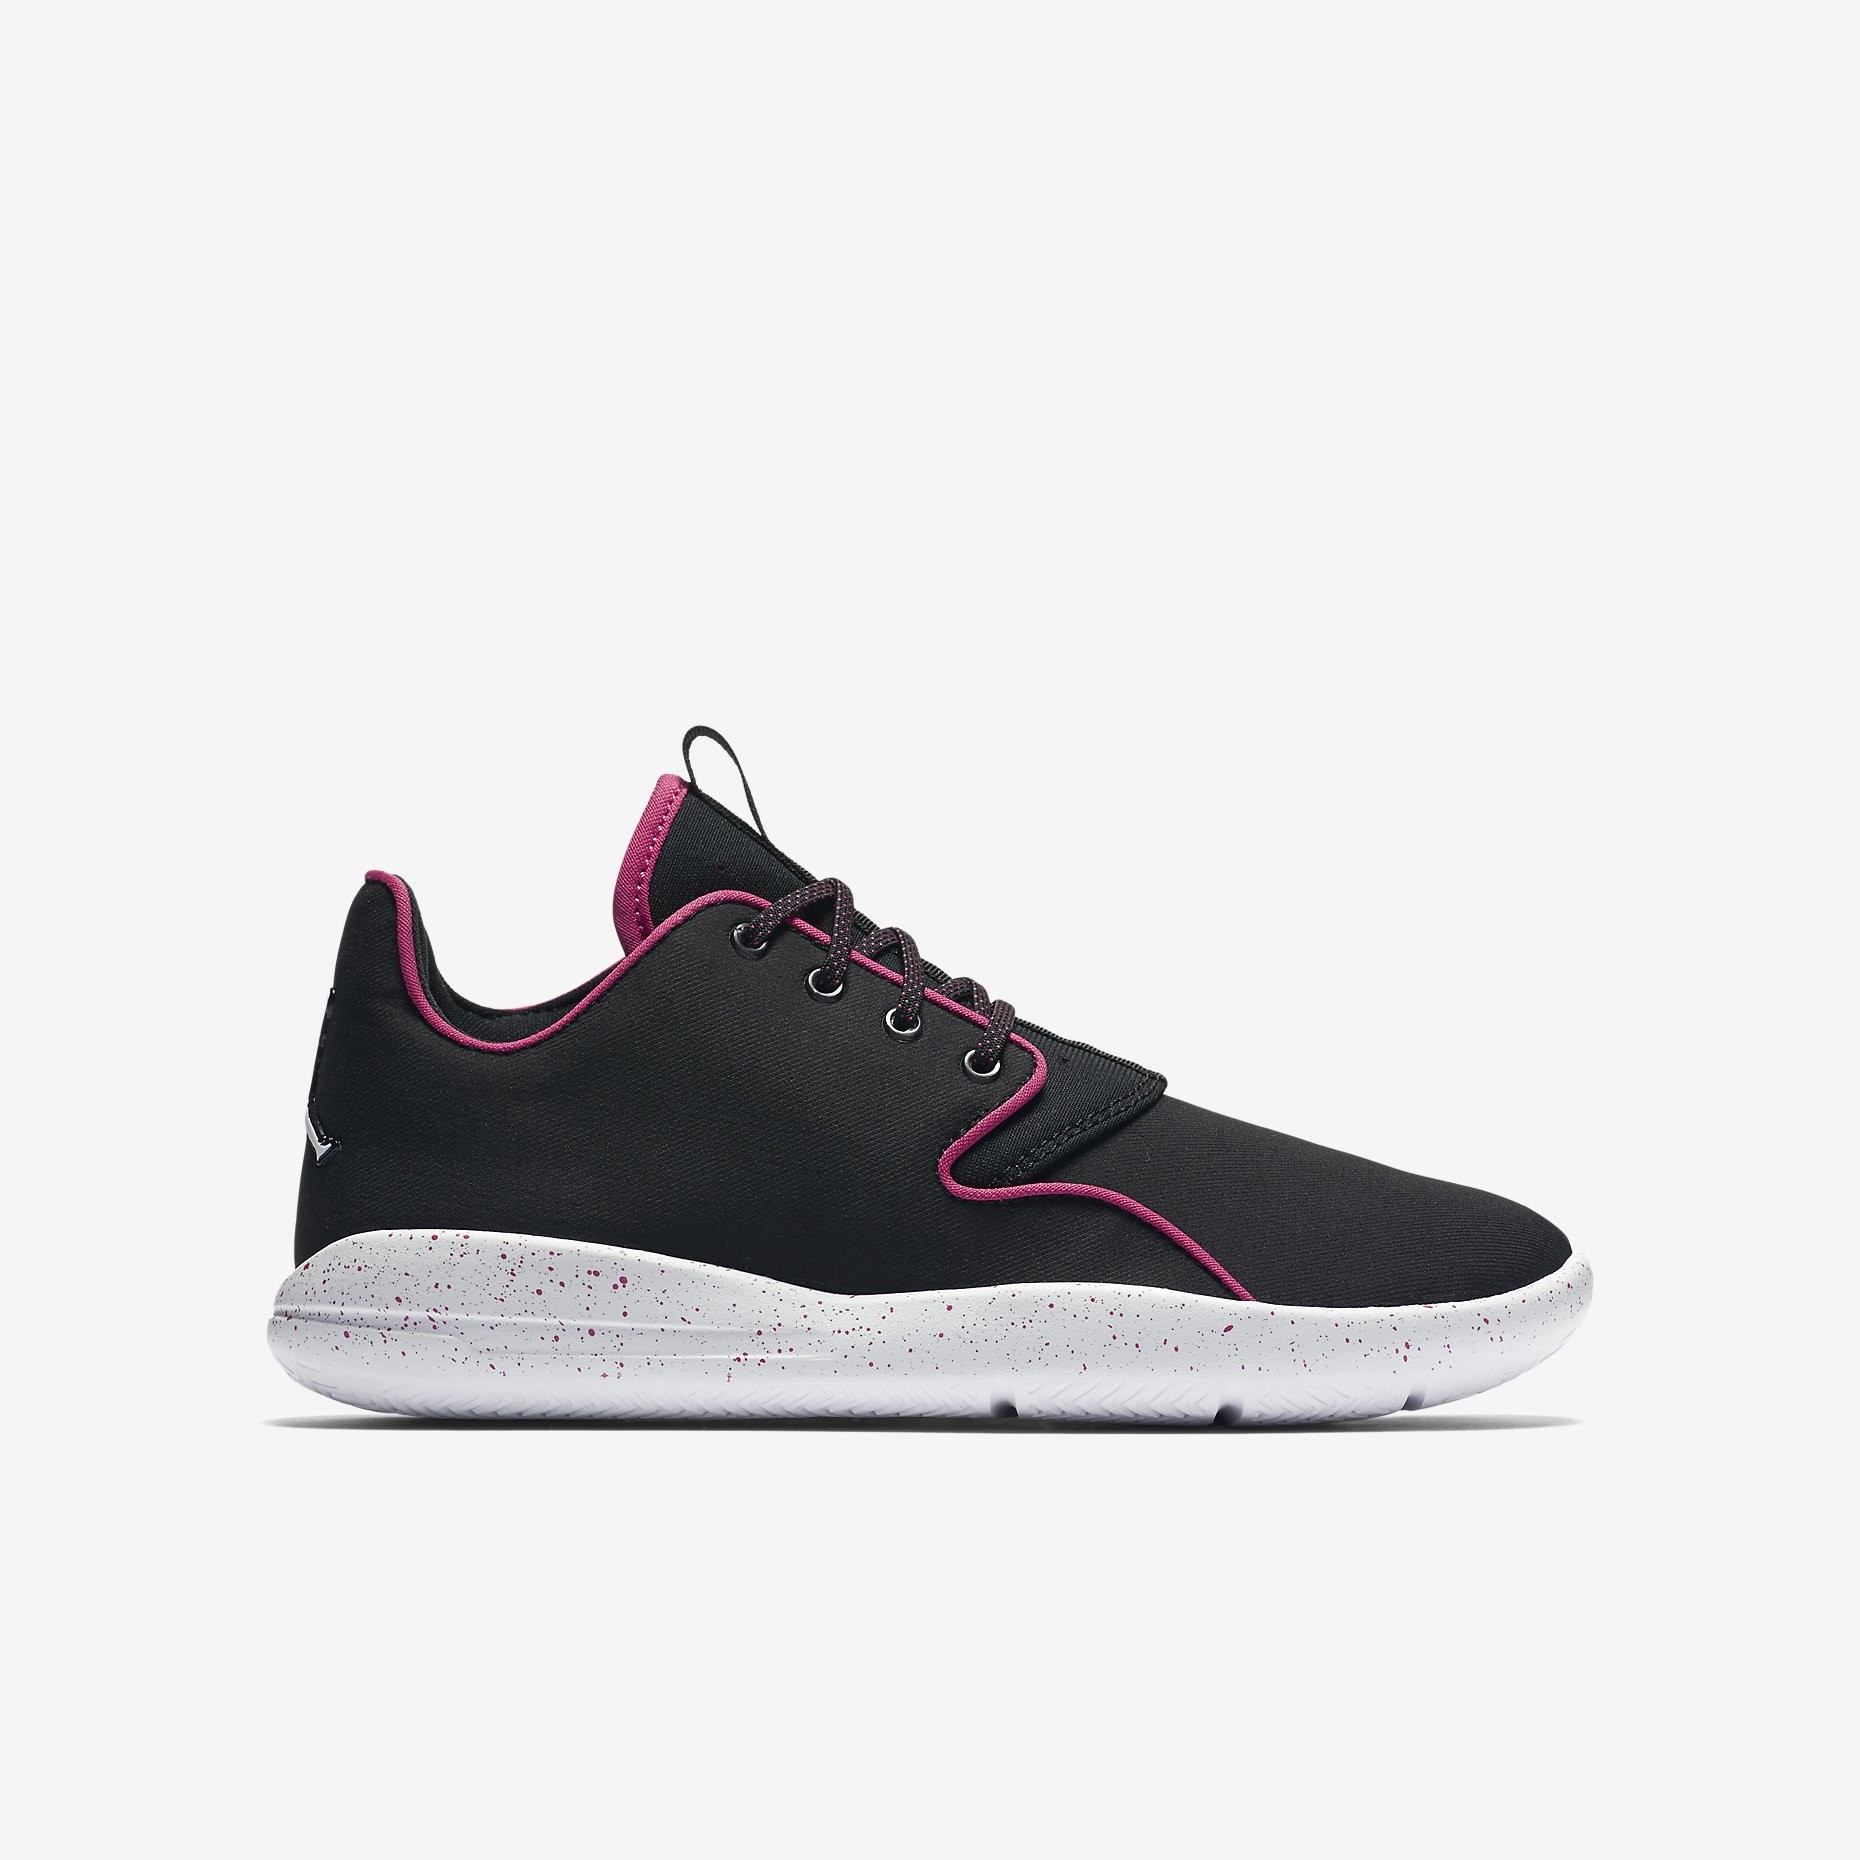 sports shoes 26e8a 6f619 Jordan Eclipse BG - Magasin Baskethouse - Genevashop Sàrl   Basketball - Streetwear - Fitness